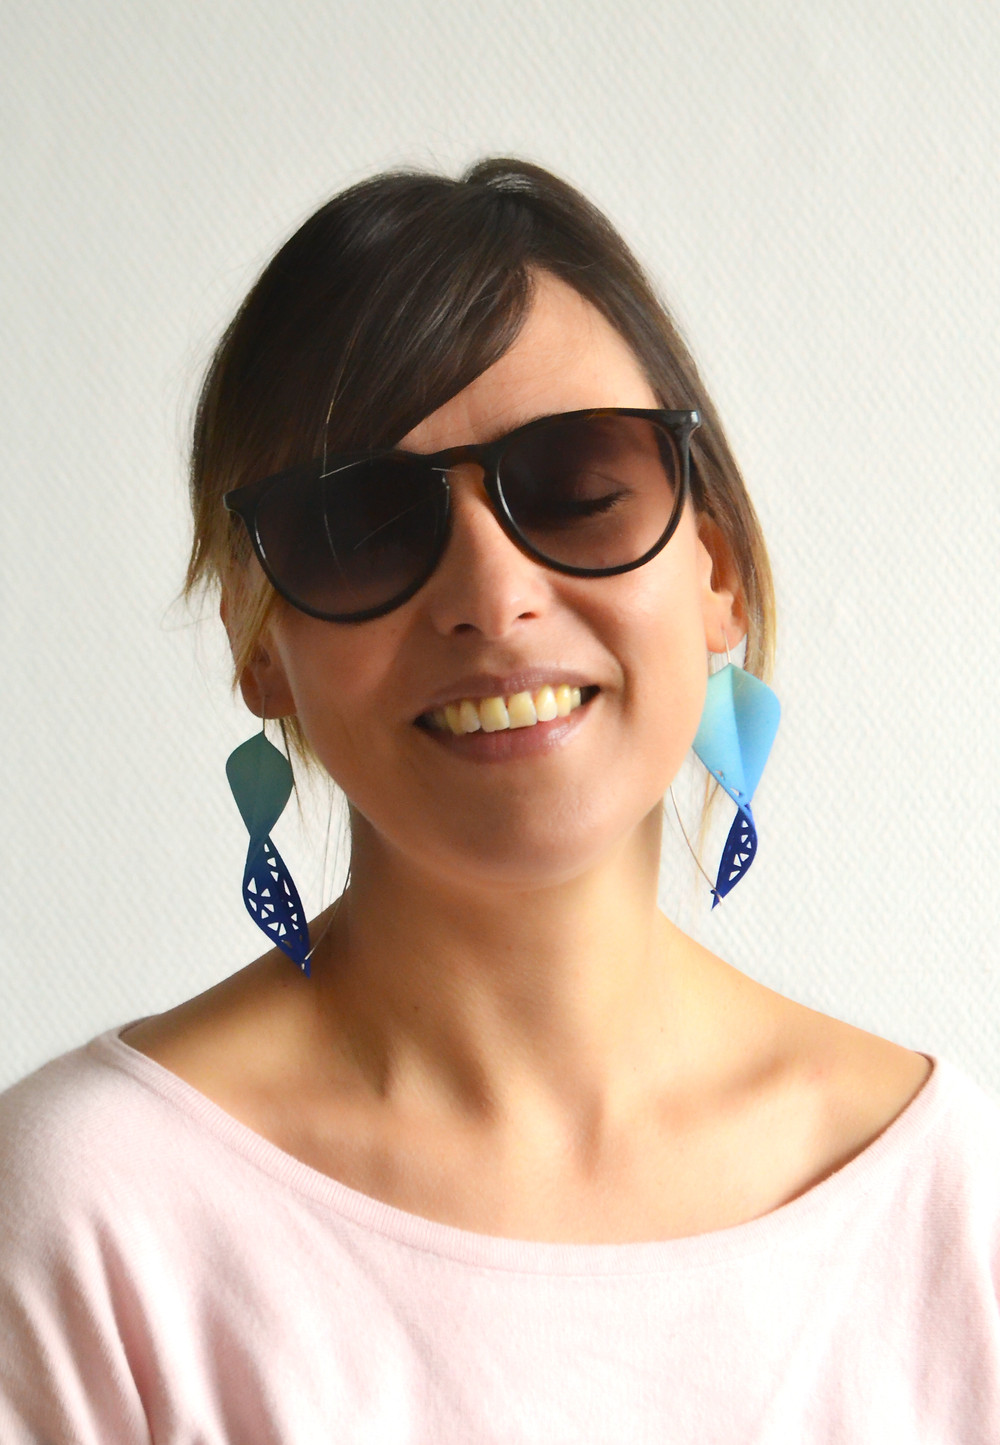 Big blue gradient leaf earrings with sunglasses for a movie star look